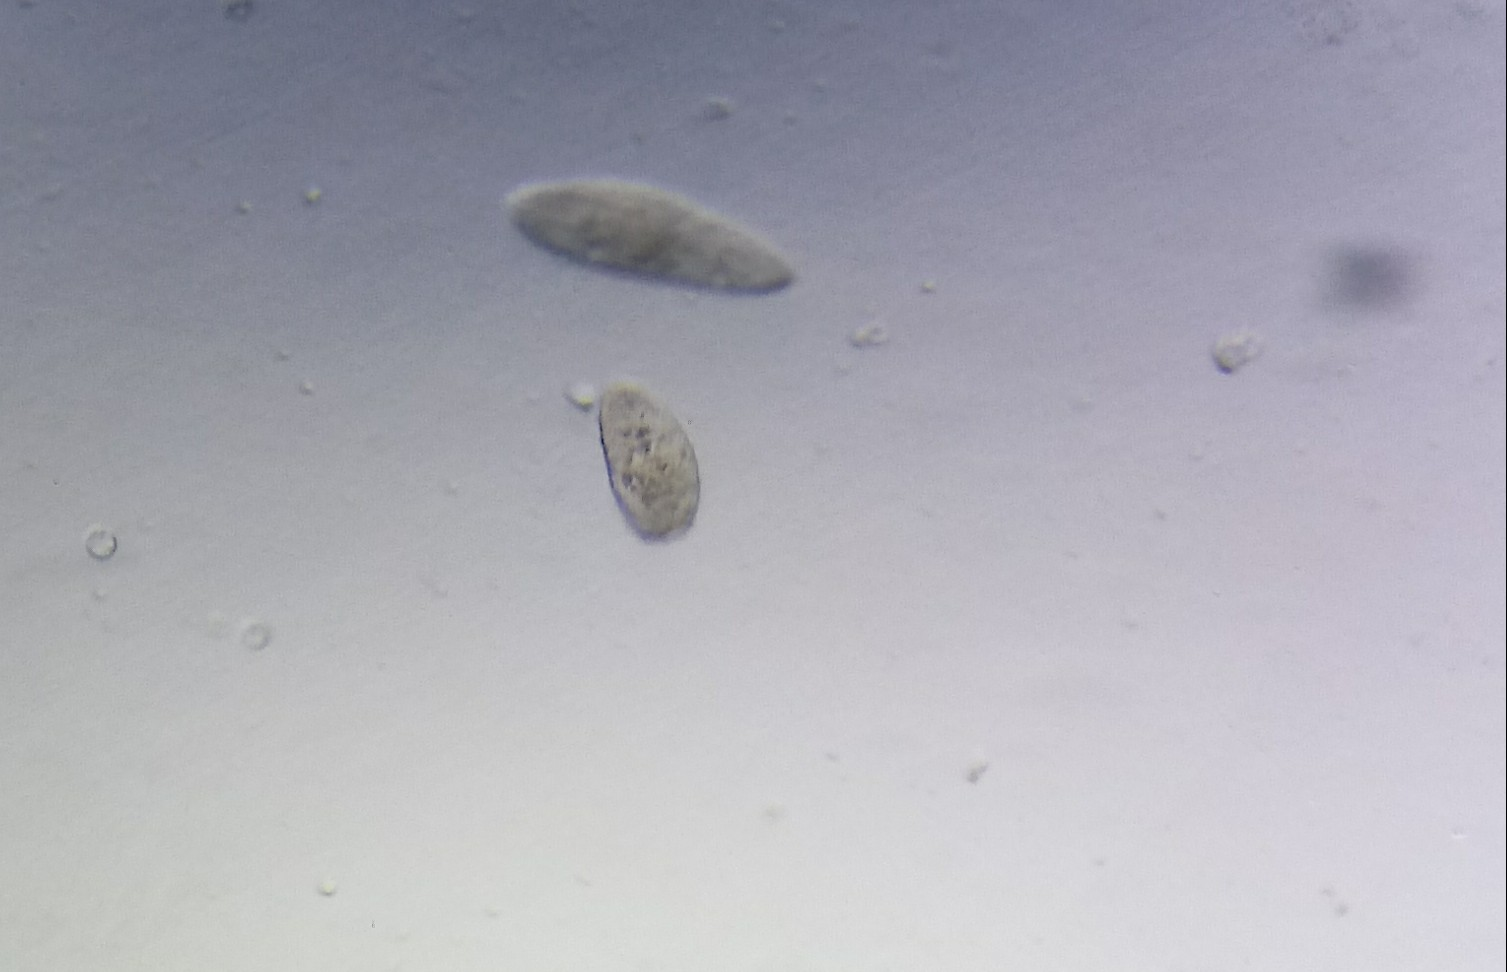 Describe asexual reproduction in paramecium aurelia